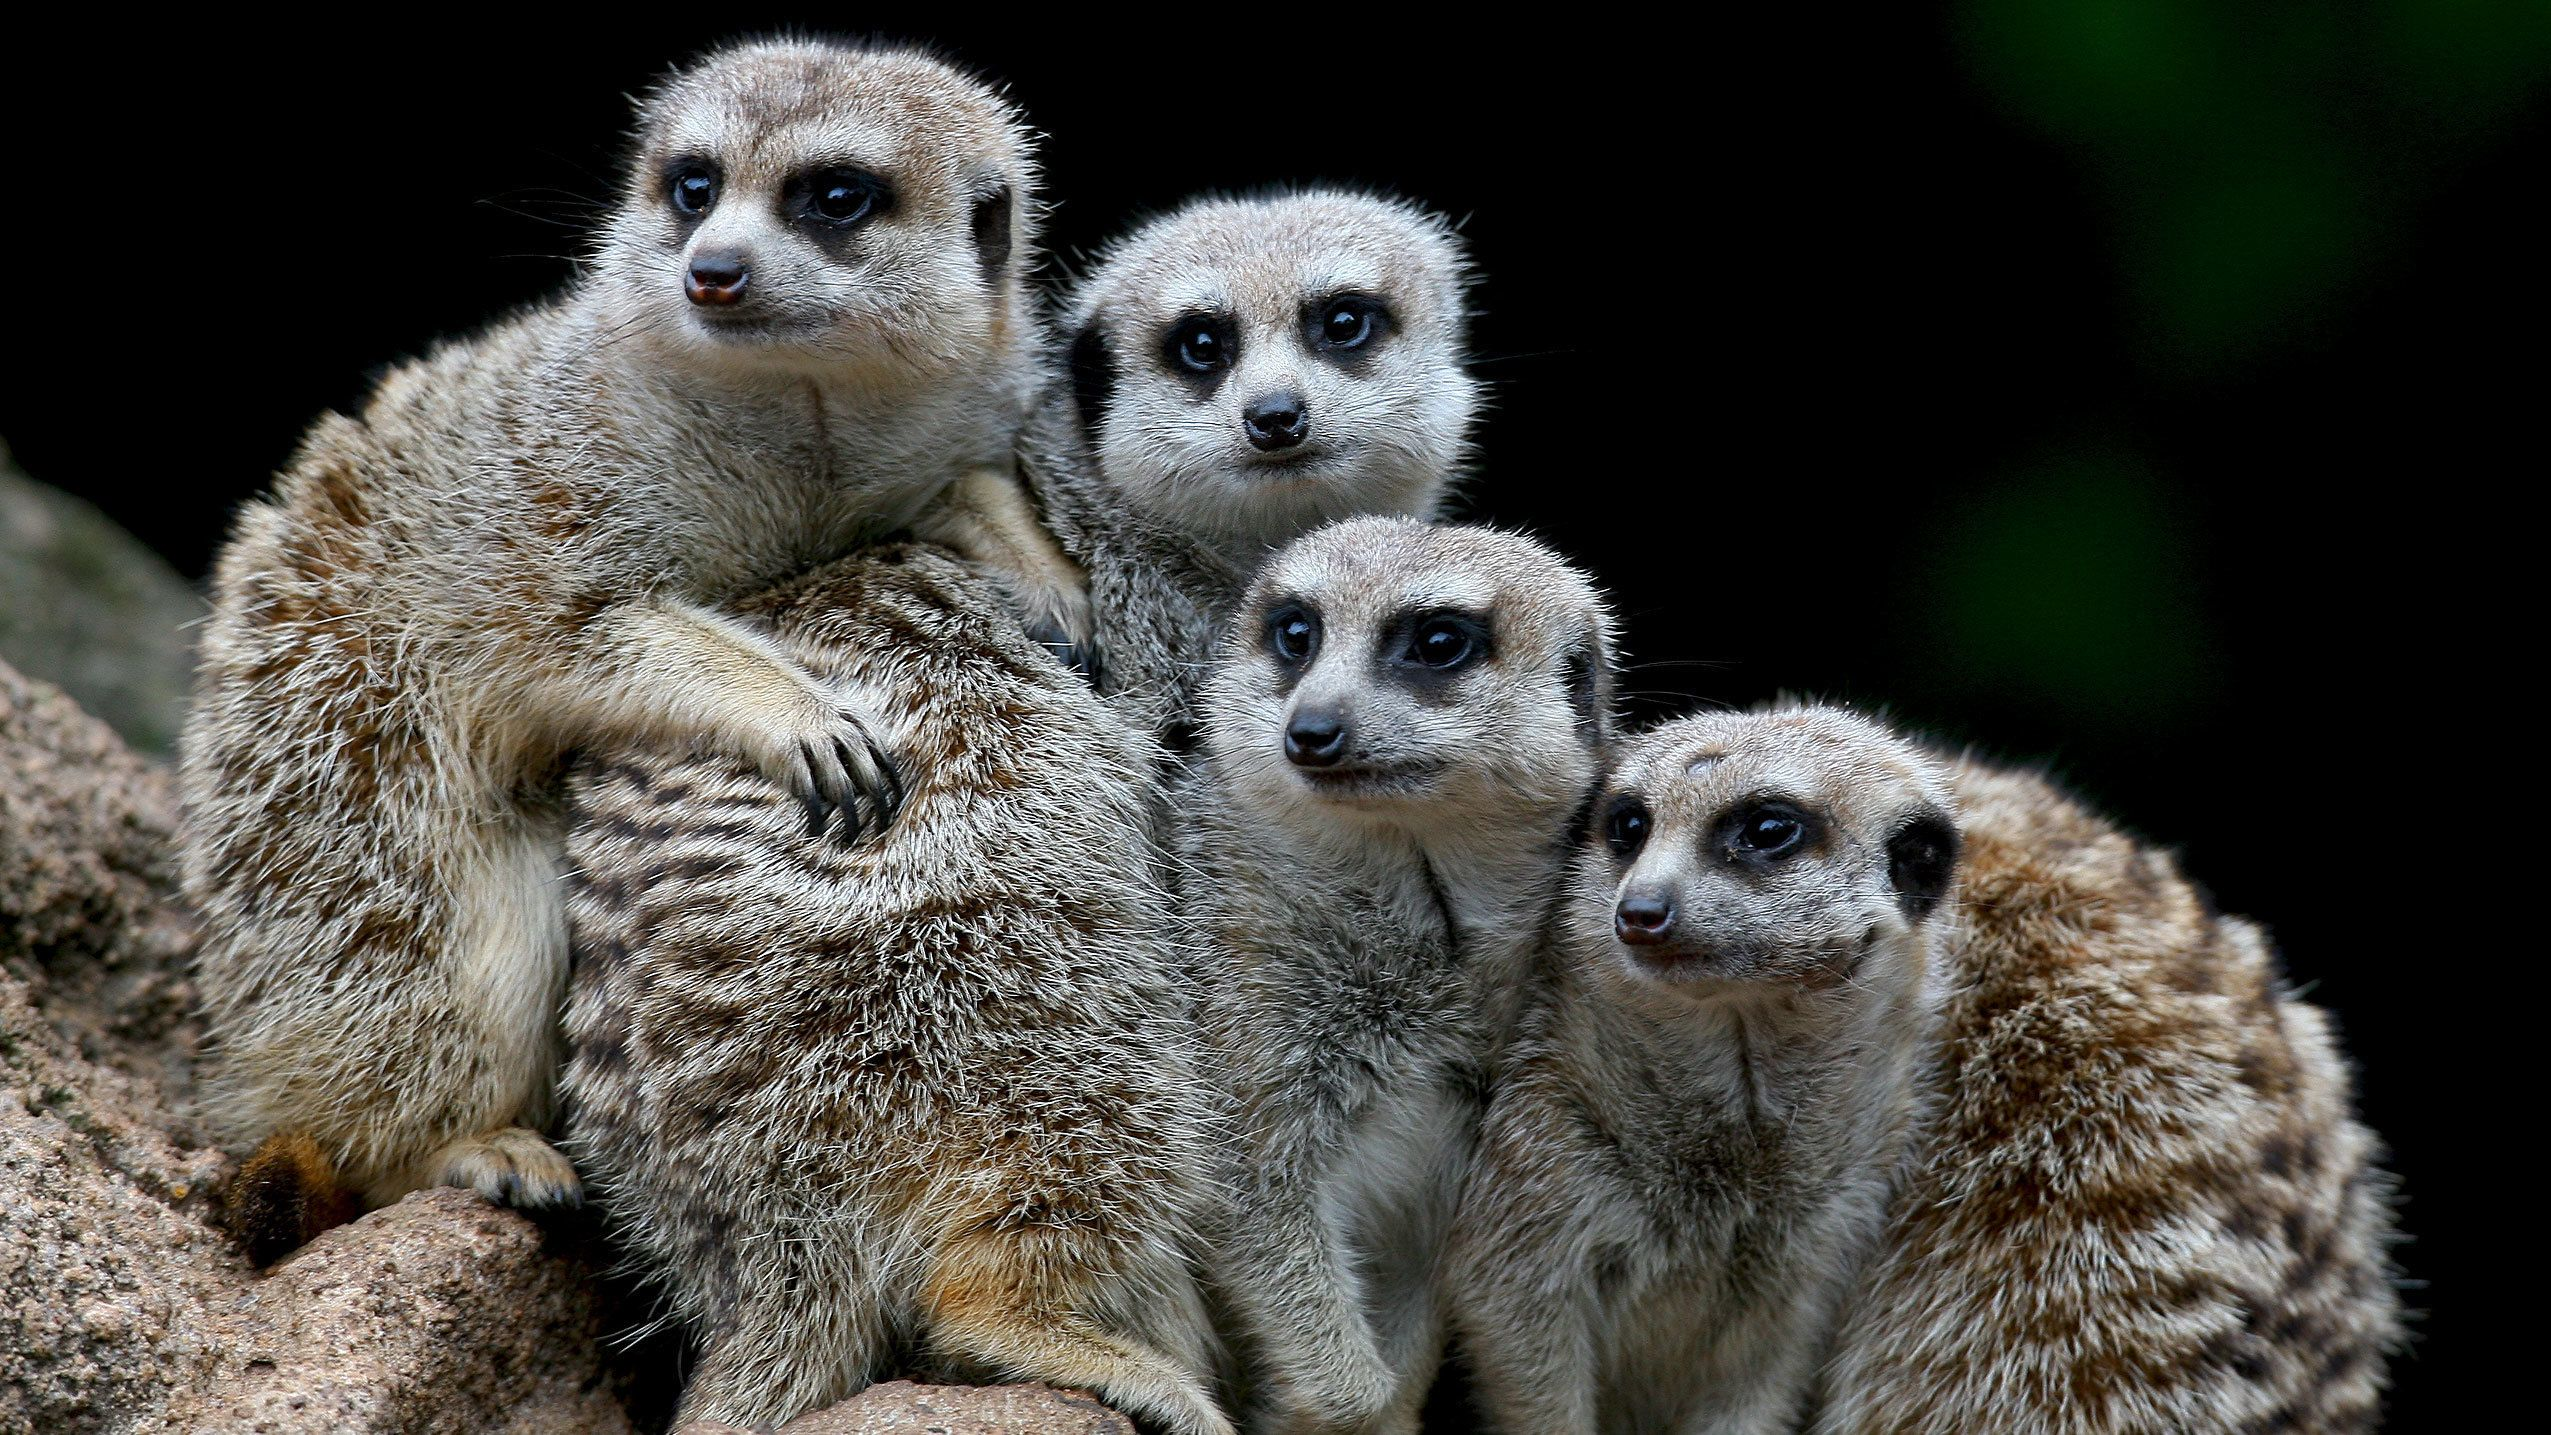 Huddled group of meerkats at the Melbourne Zoo in Australia